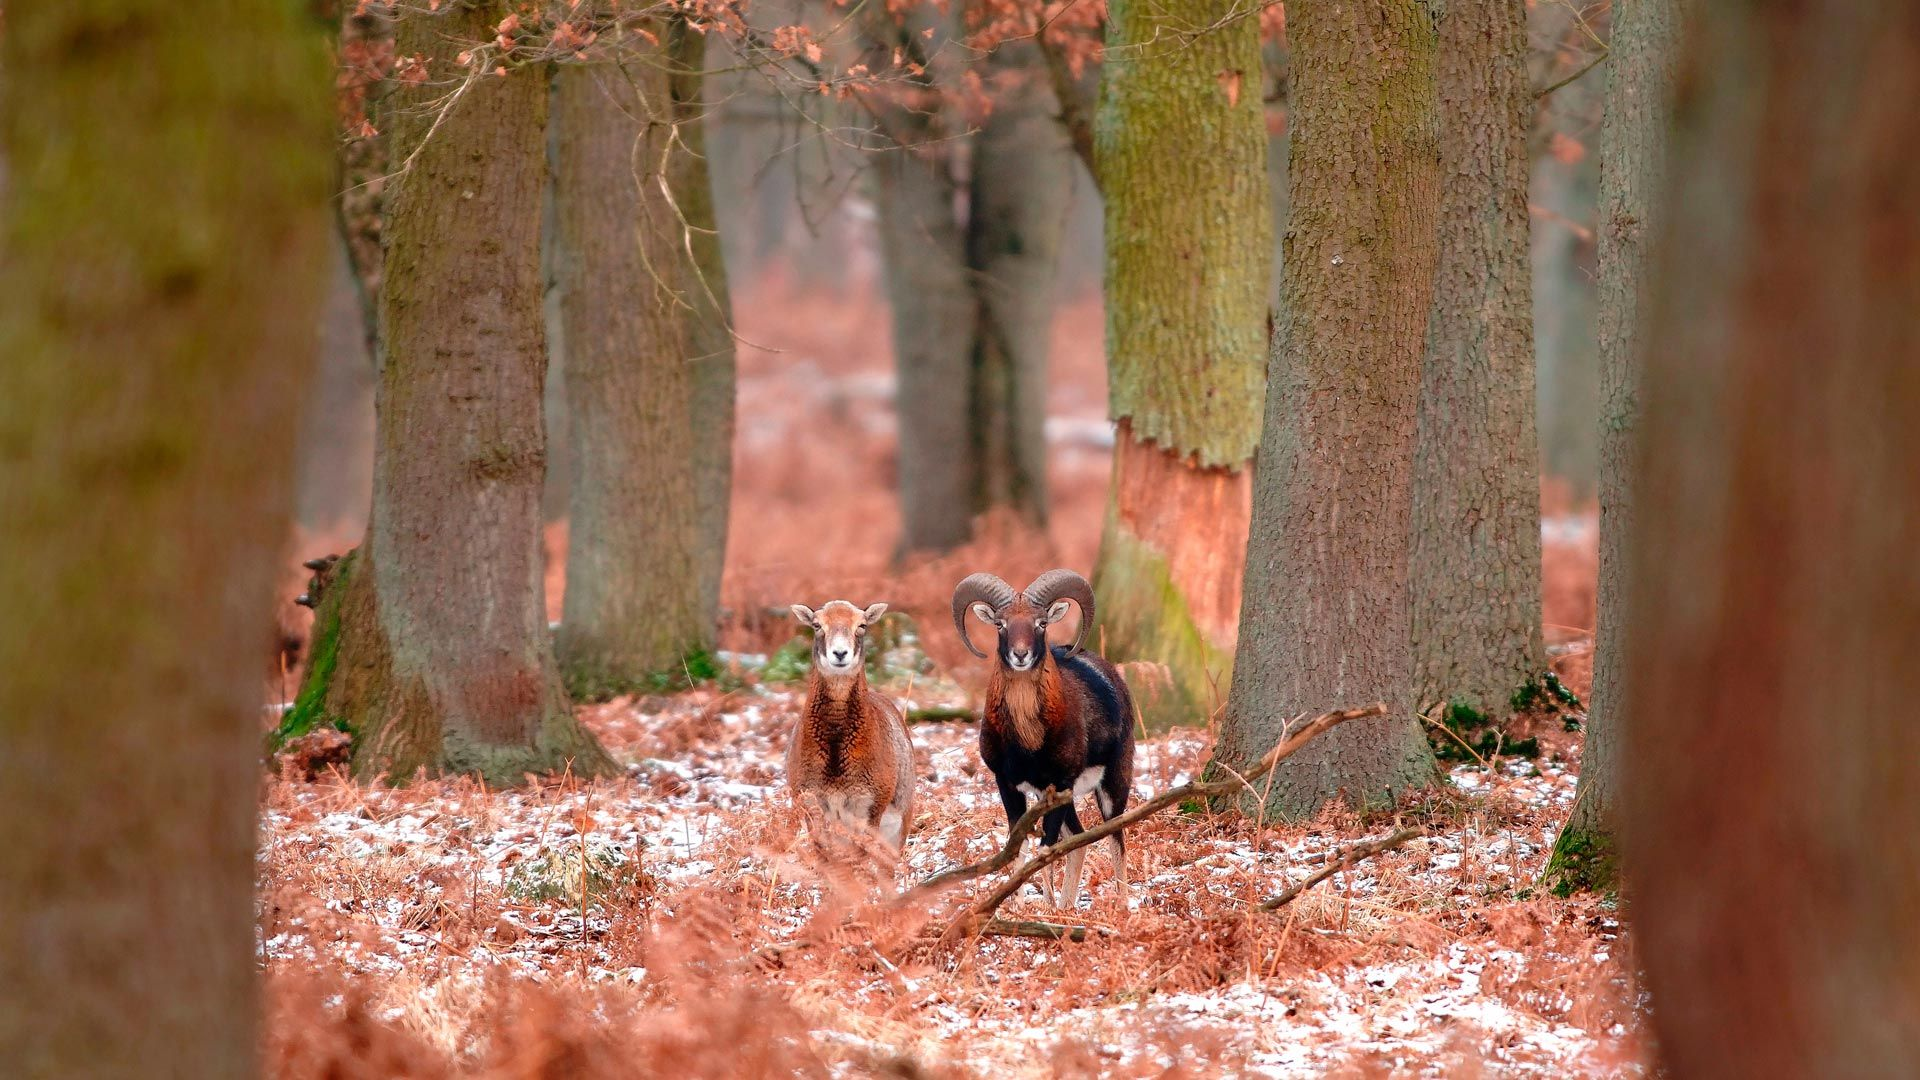 Mouflons in the forest tbkmediadeAlamy Bing Images Animals 1920x1080